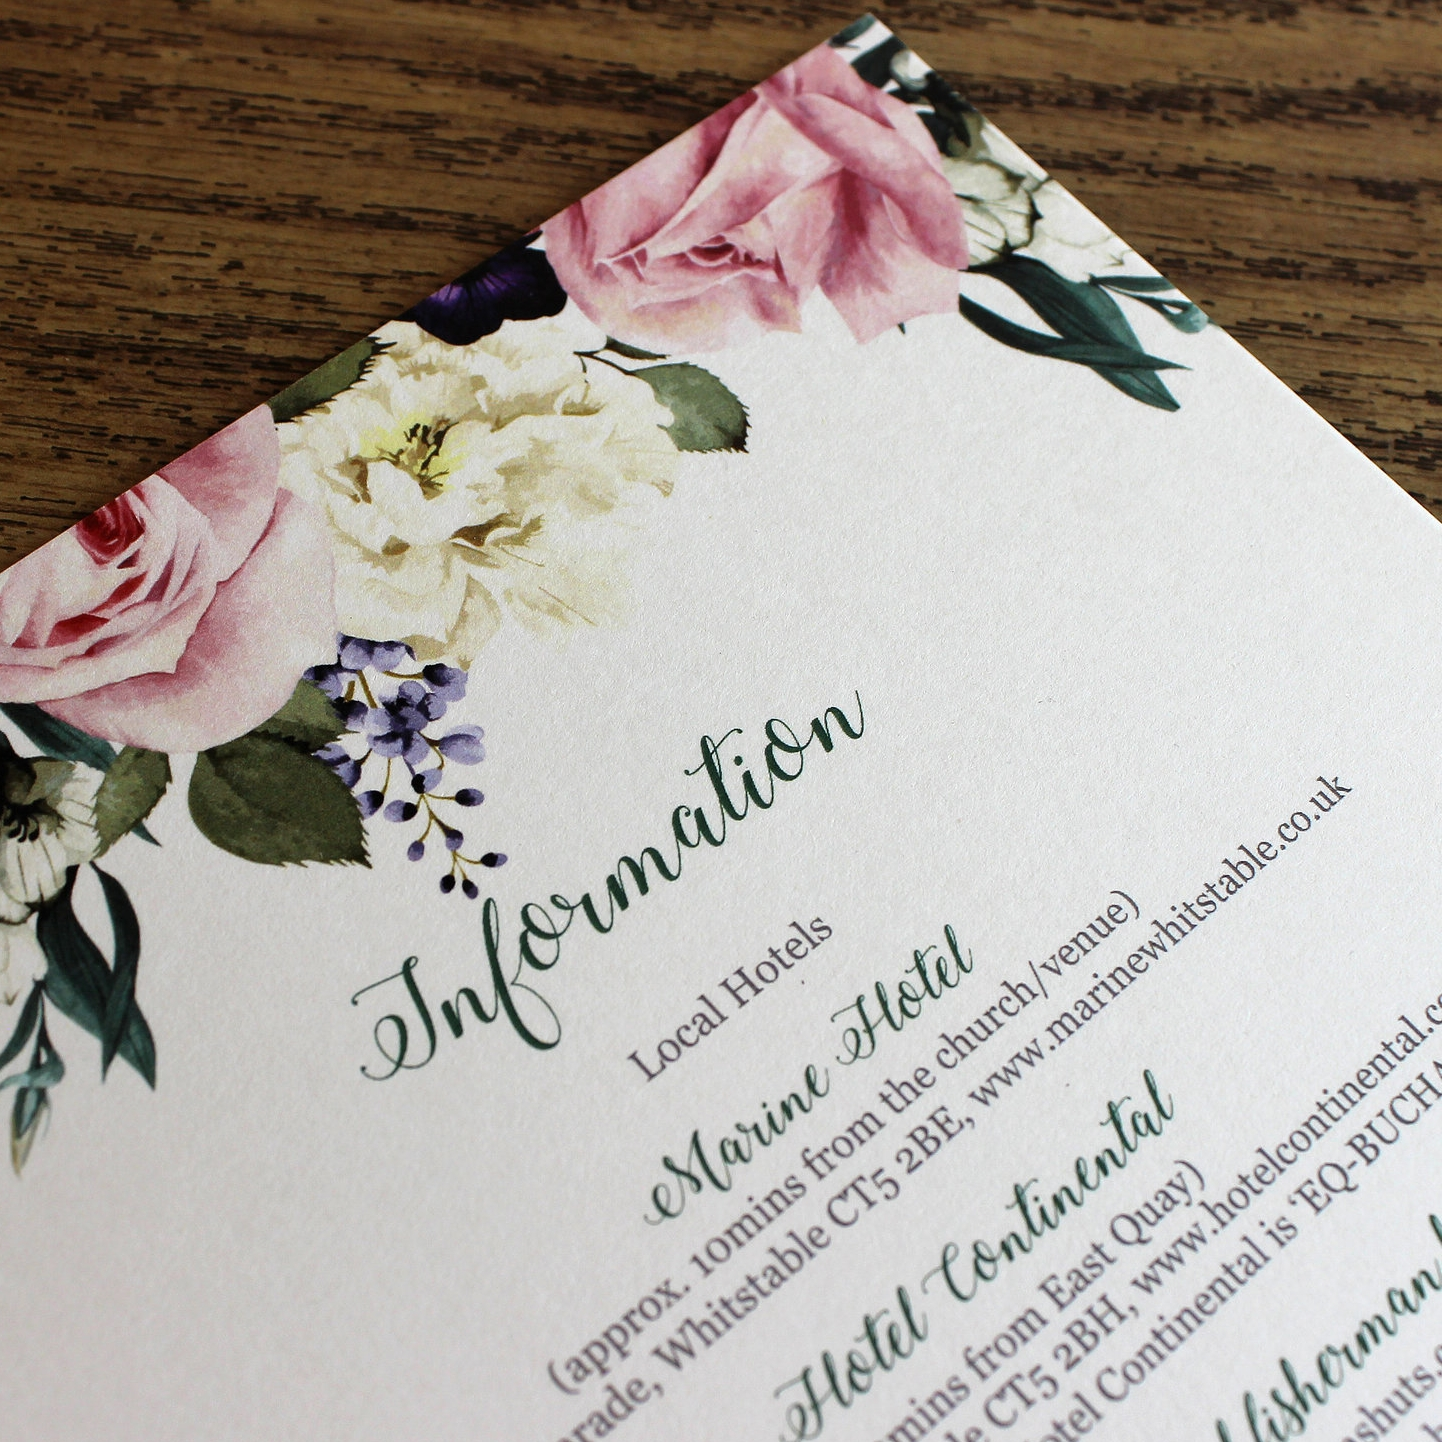 Digitally printed Wedding invites with floral header